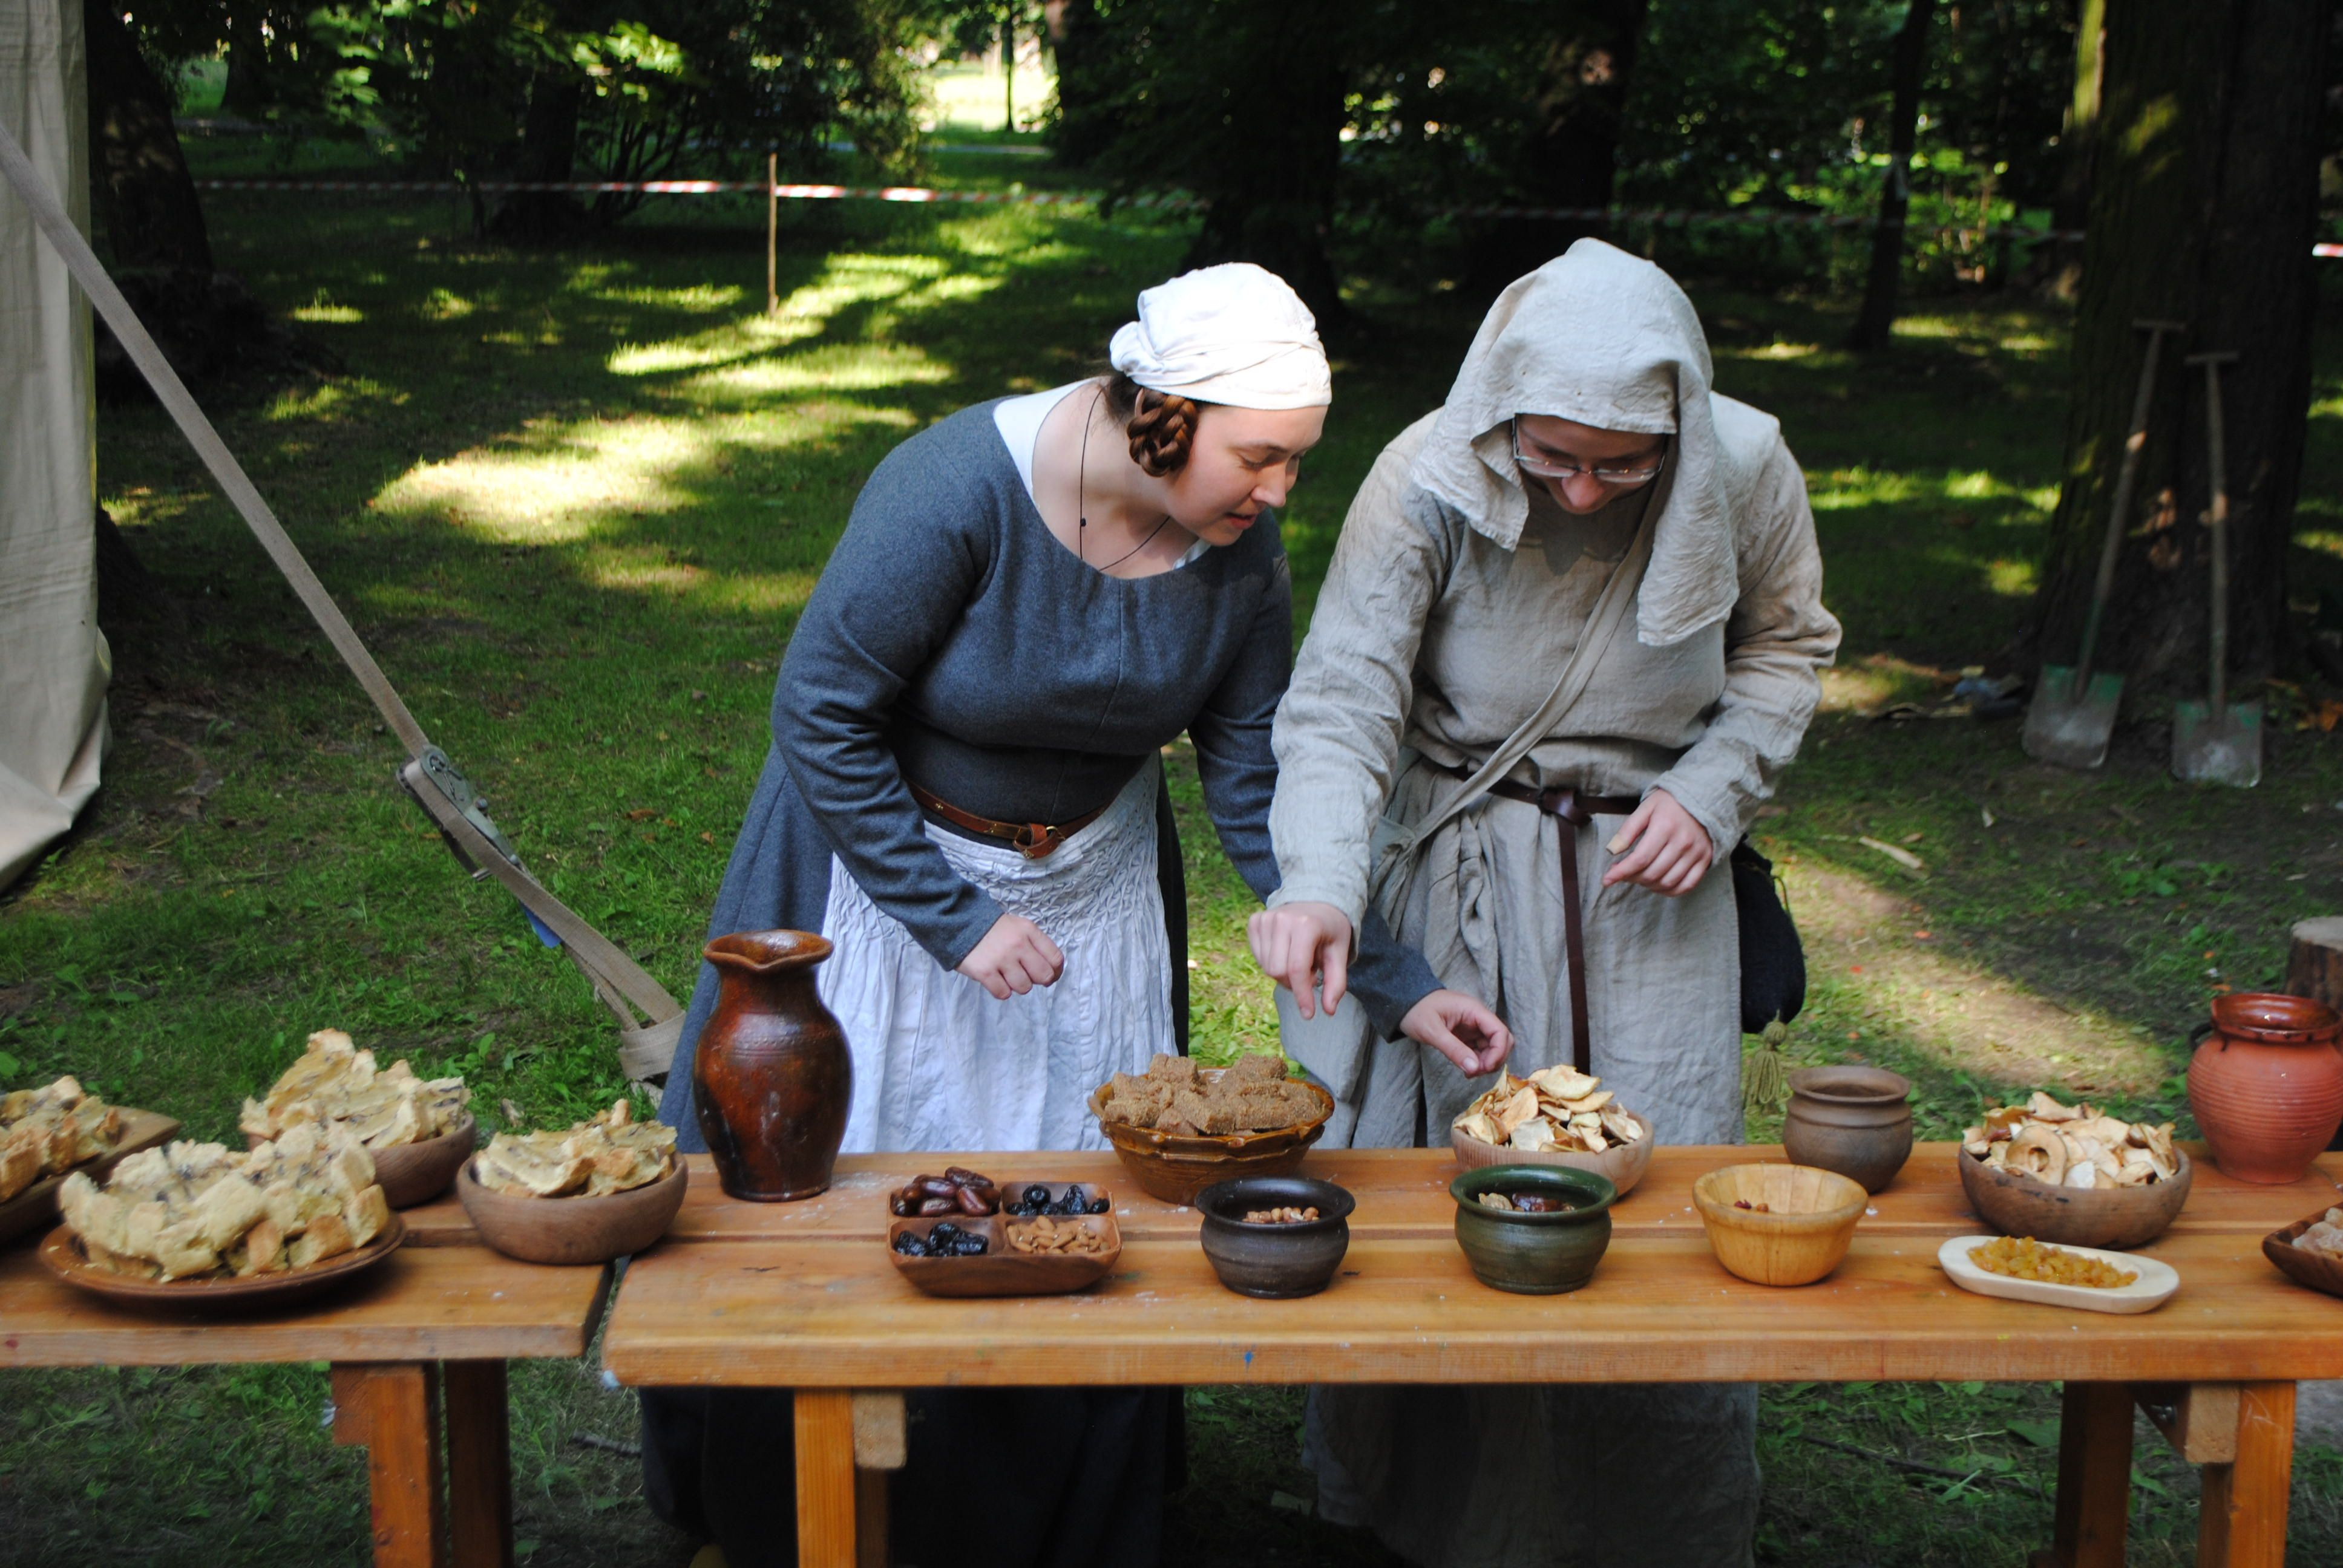 Another part of our medieval food exhibition.